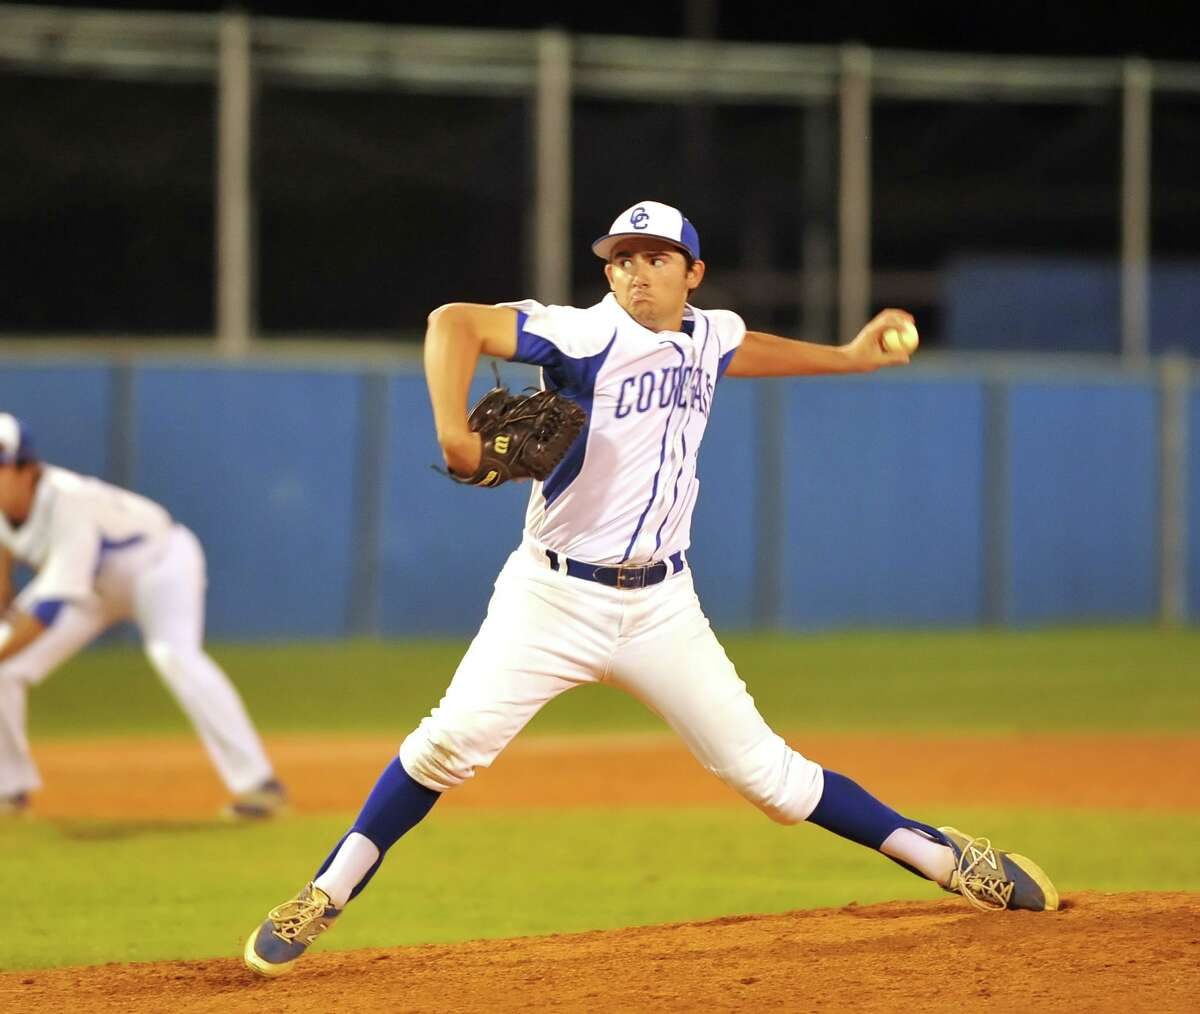 Cy Creek 2016 graduate Gabriel Sequeira signed with the Detriot Tigers Friday, July 10, as an undrafted free agent following the 2020 MLB First-Year Player Draft.